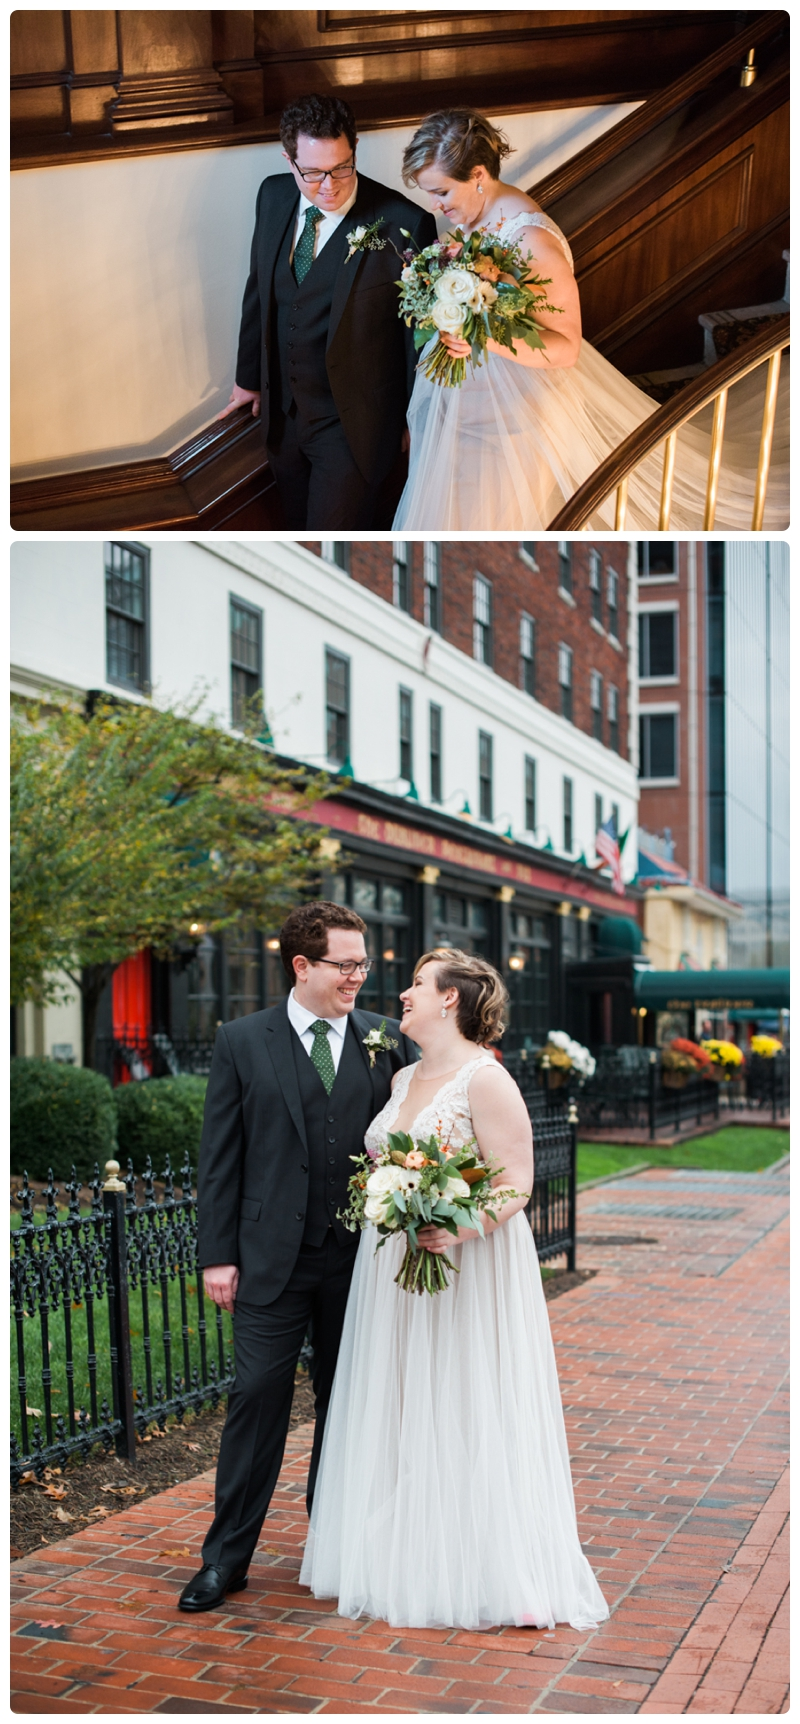 Wedding in Washington DC by Rachael Foster Photography_0011.jpg